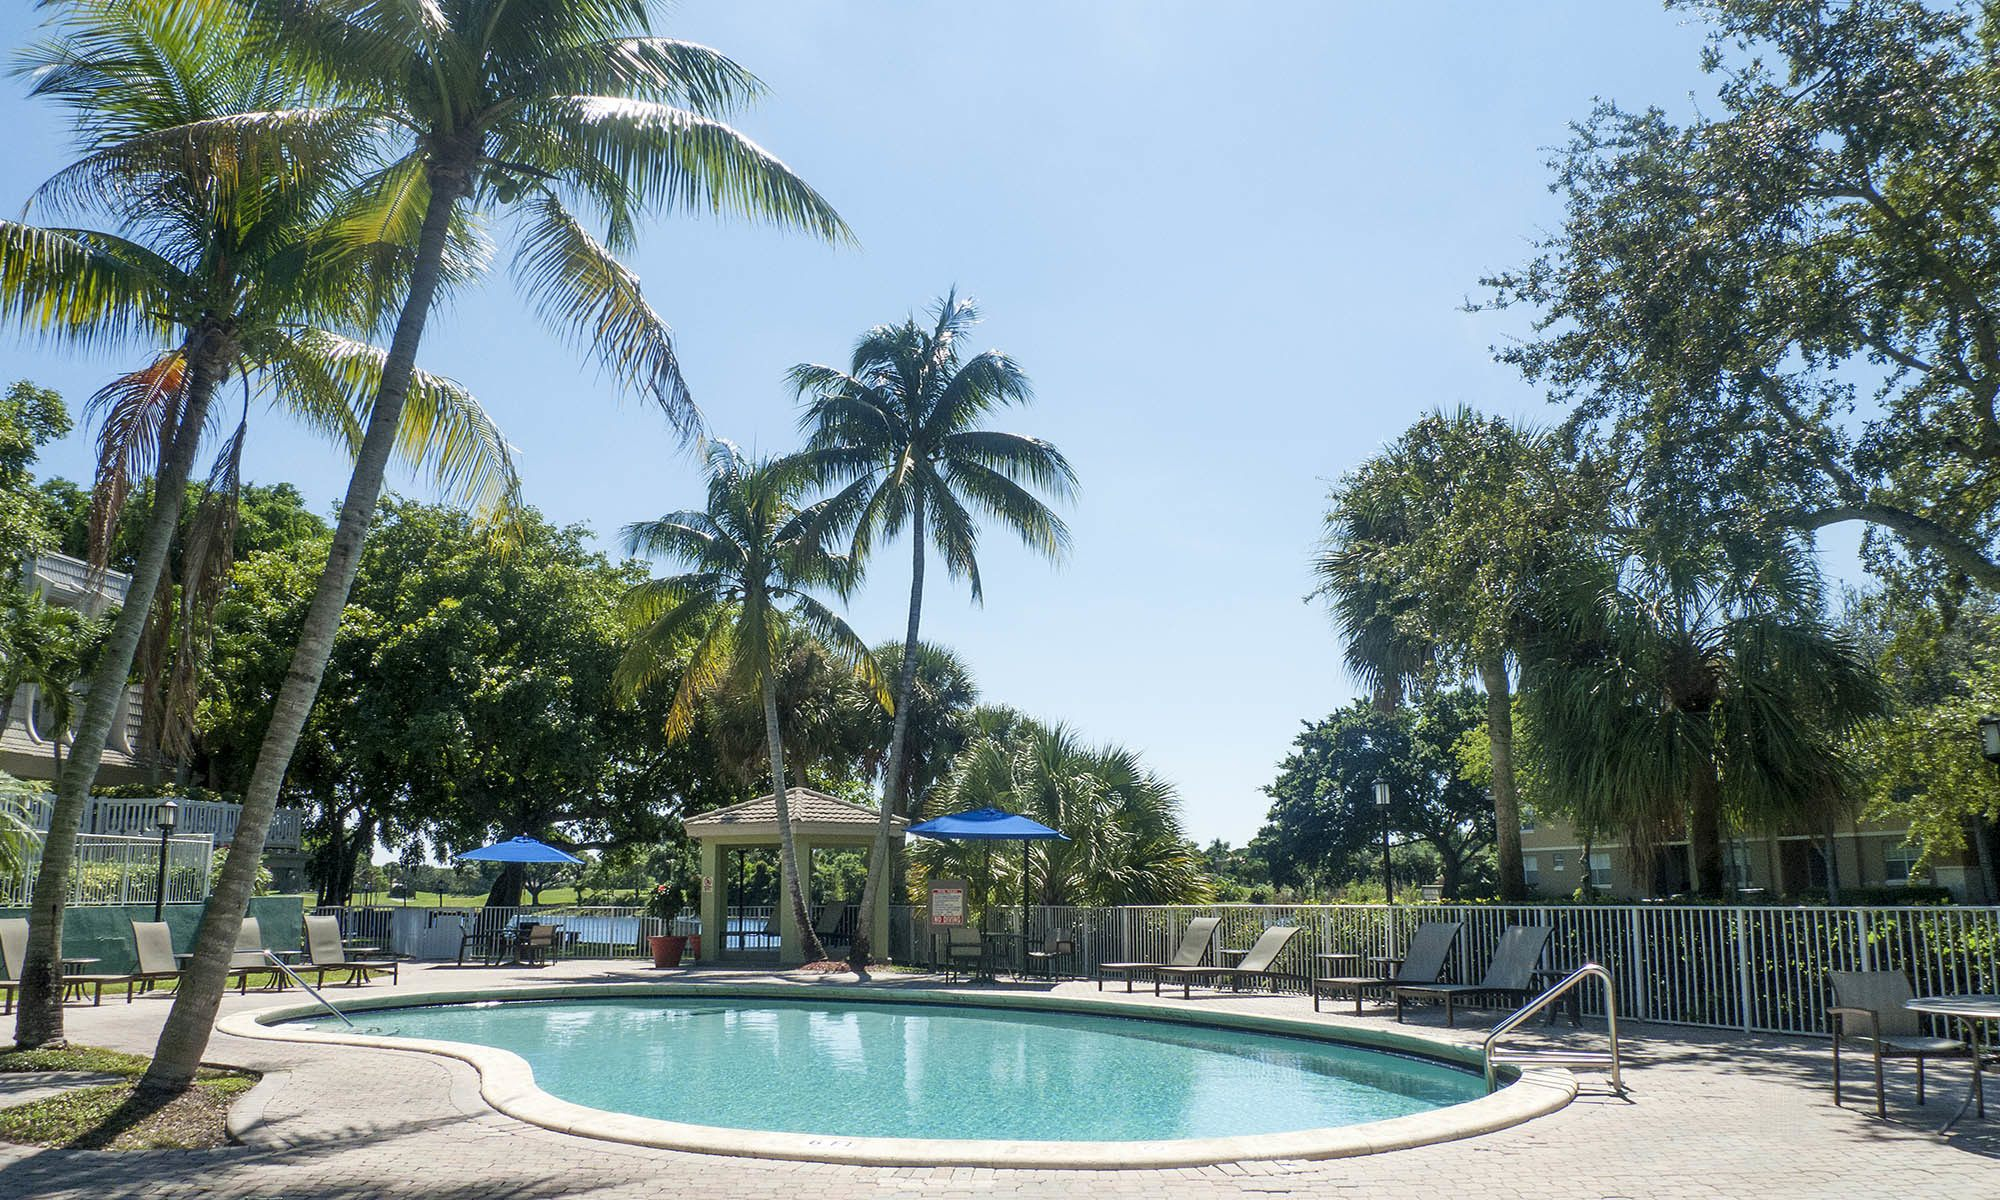 Apartments in Plantation, FL